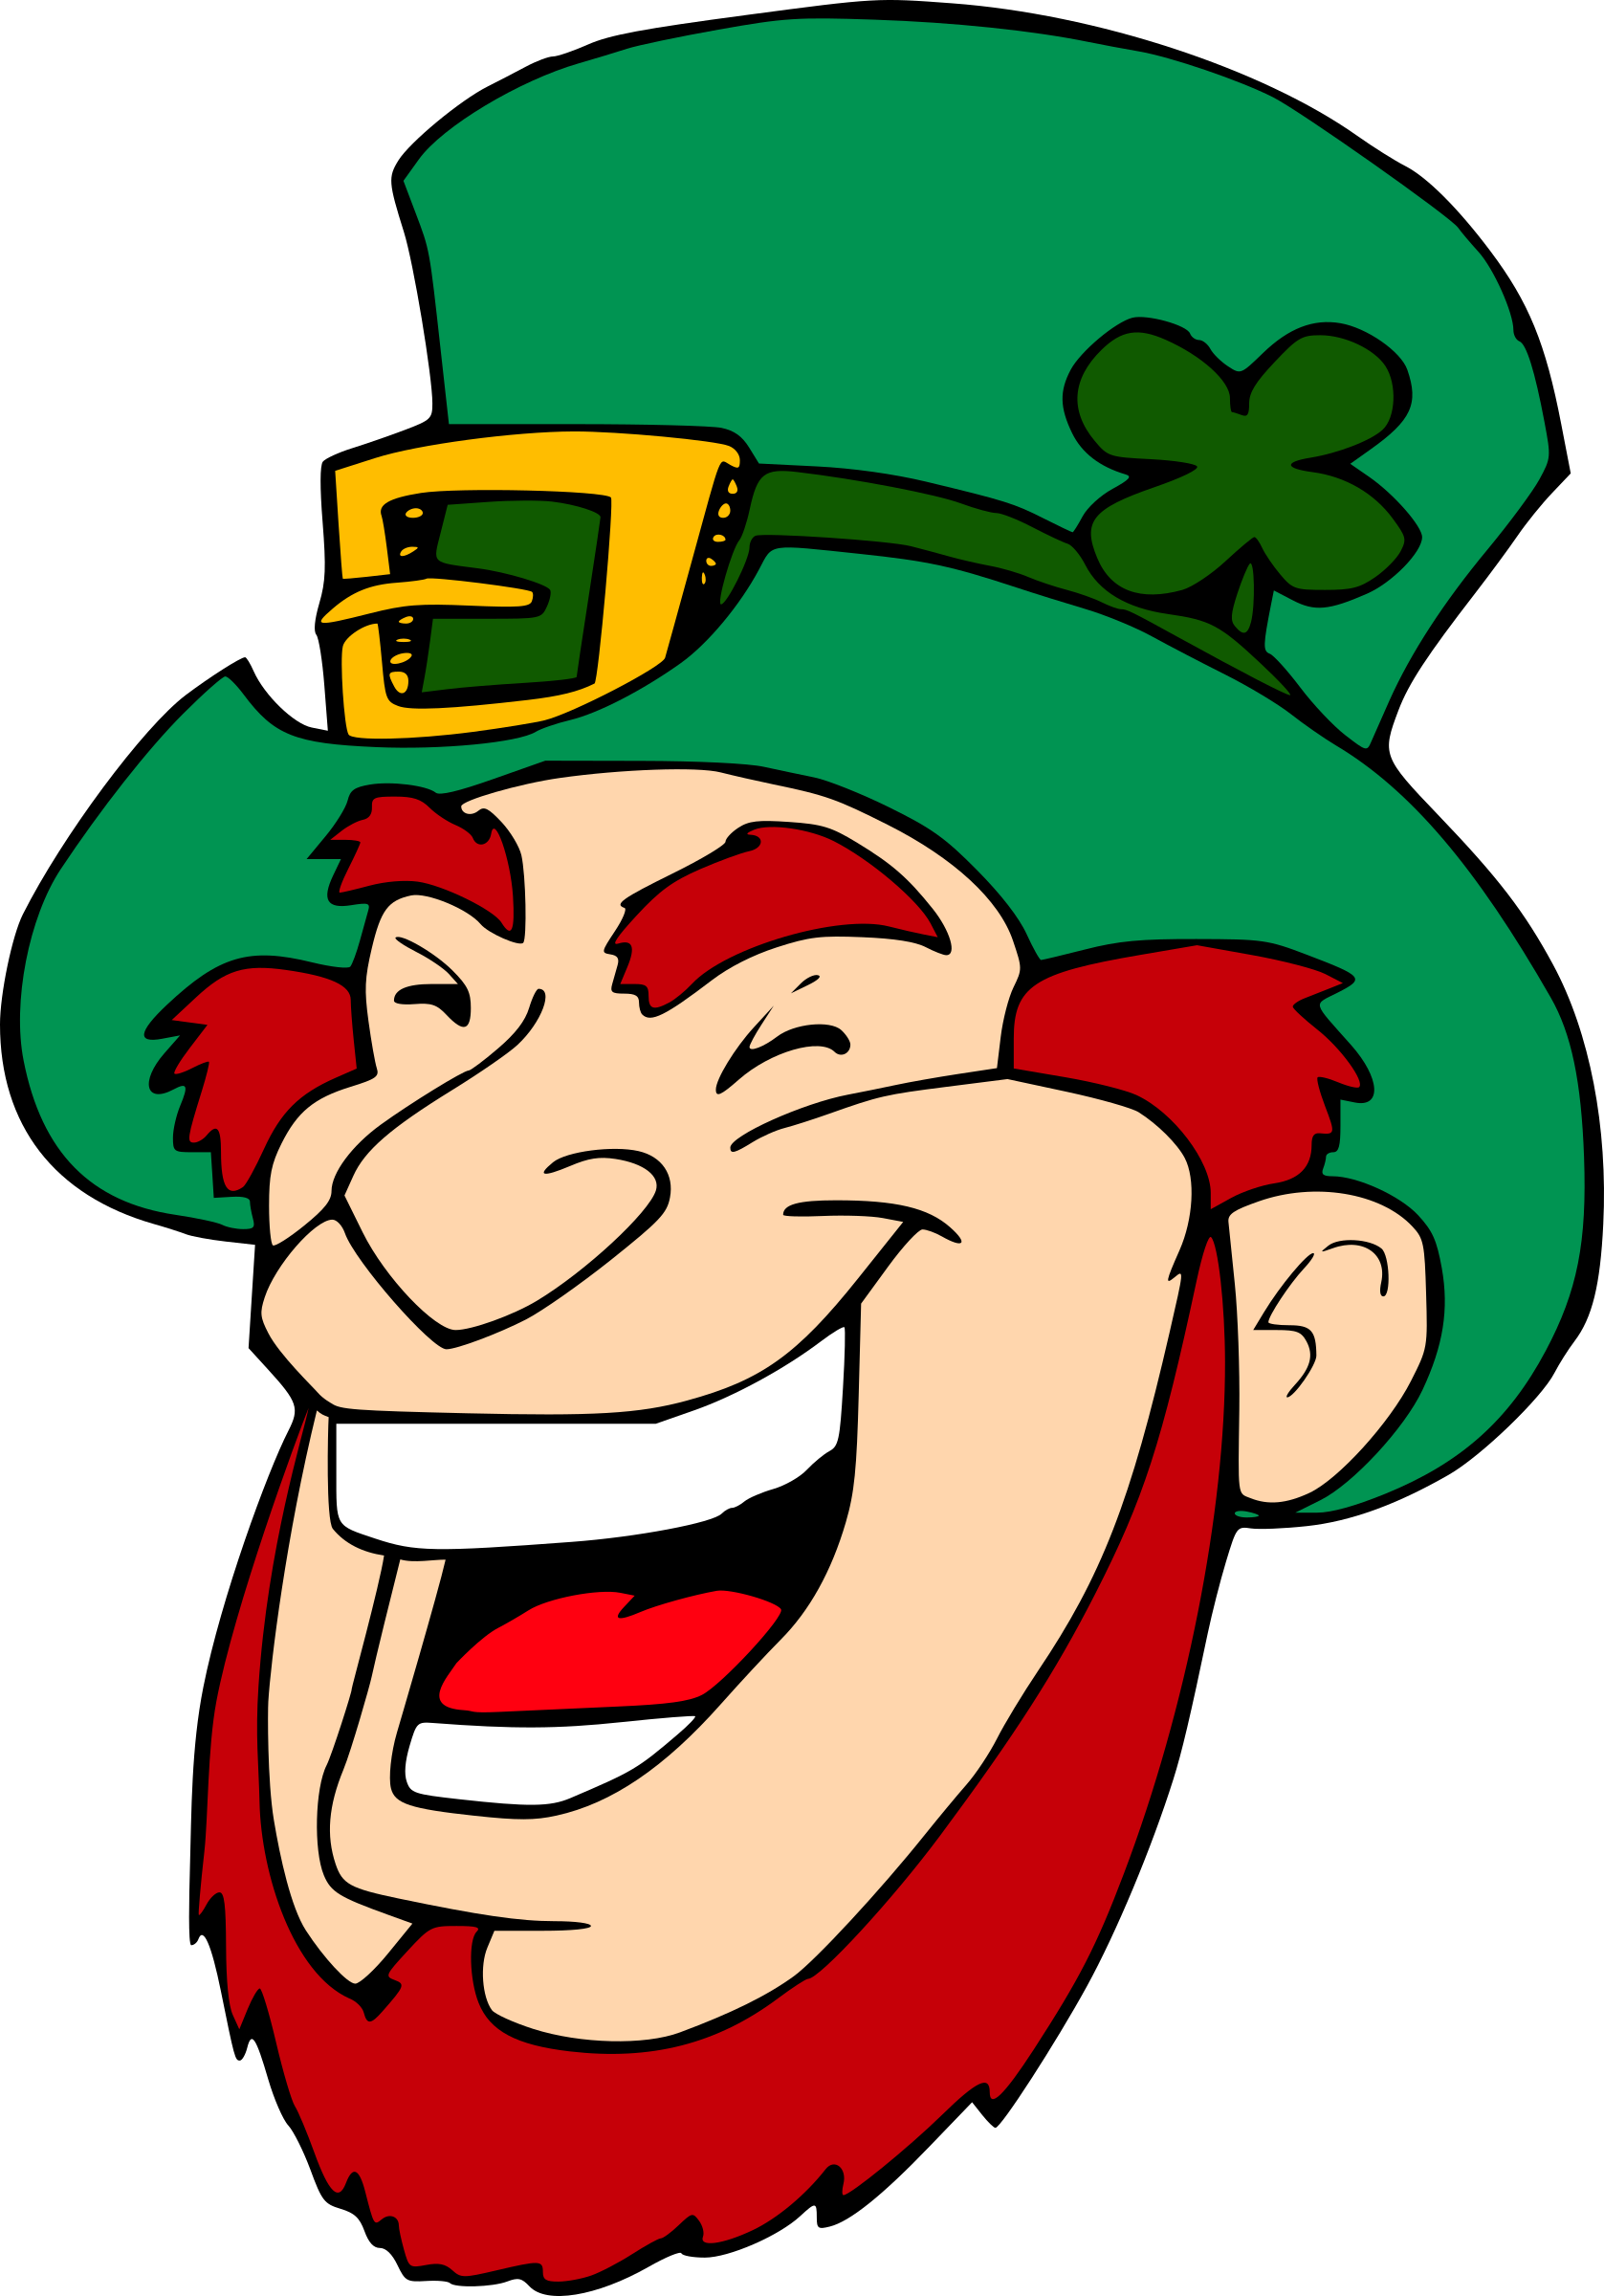 Laughing Leprechaun 1 by SeriousTux